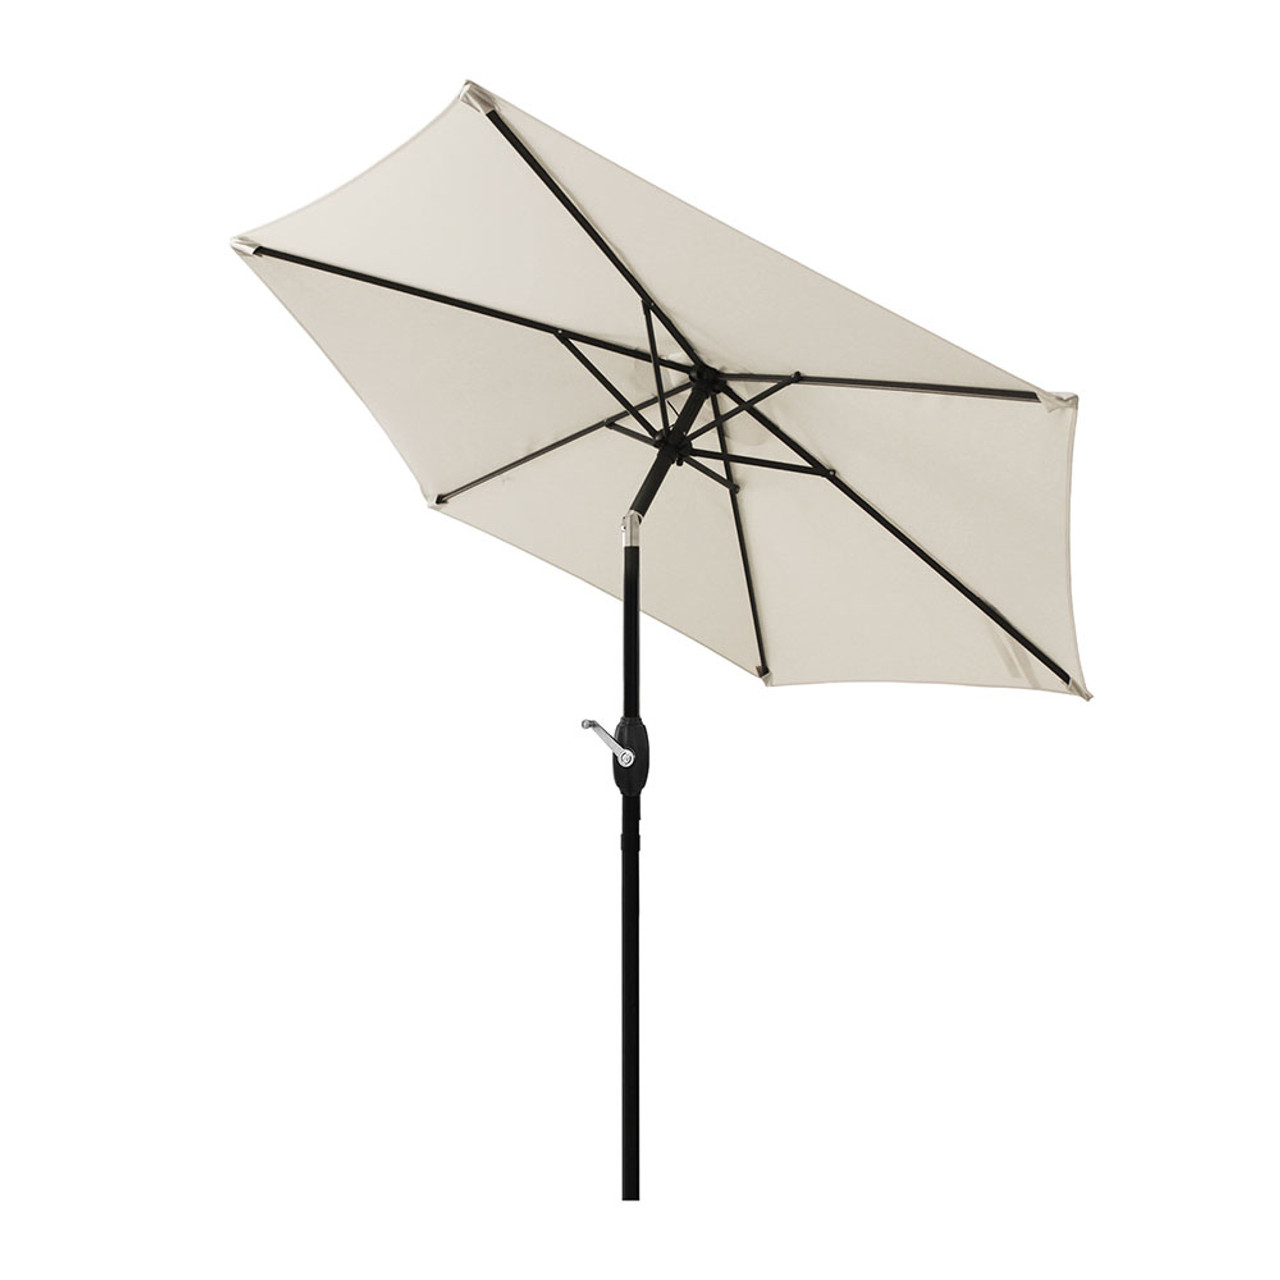 7.5-Foot Waterproof Patio Table Umbrella with UV Protection! .99 (REG .99) + Free Shipping at Until Gone!